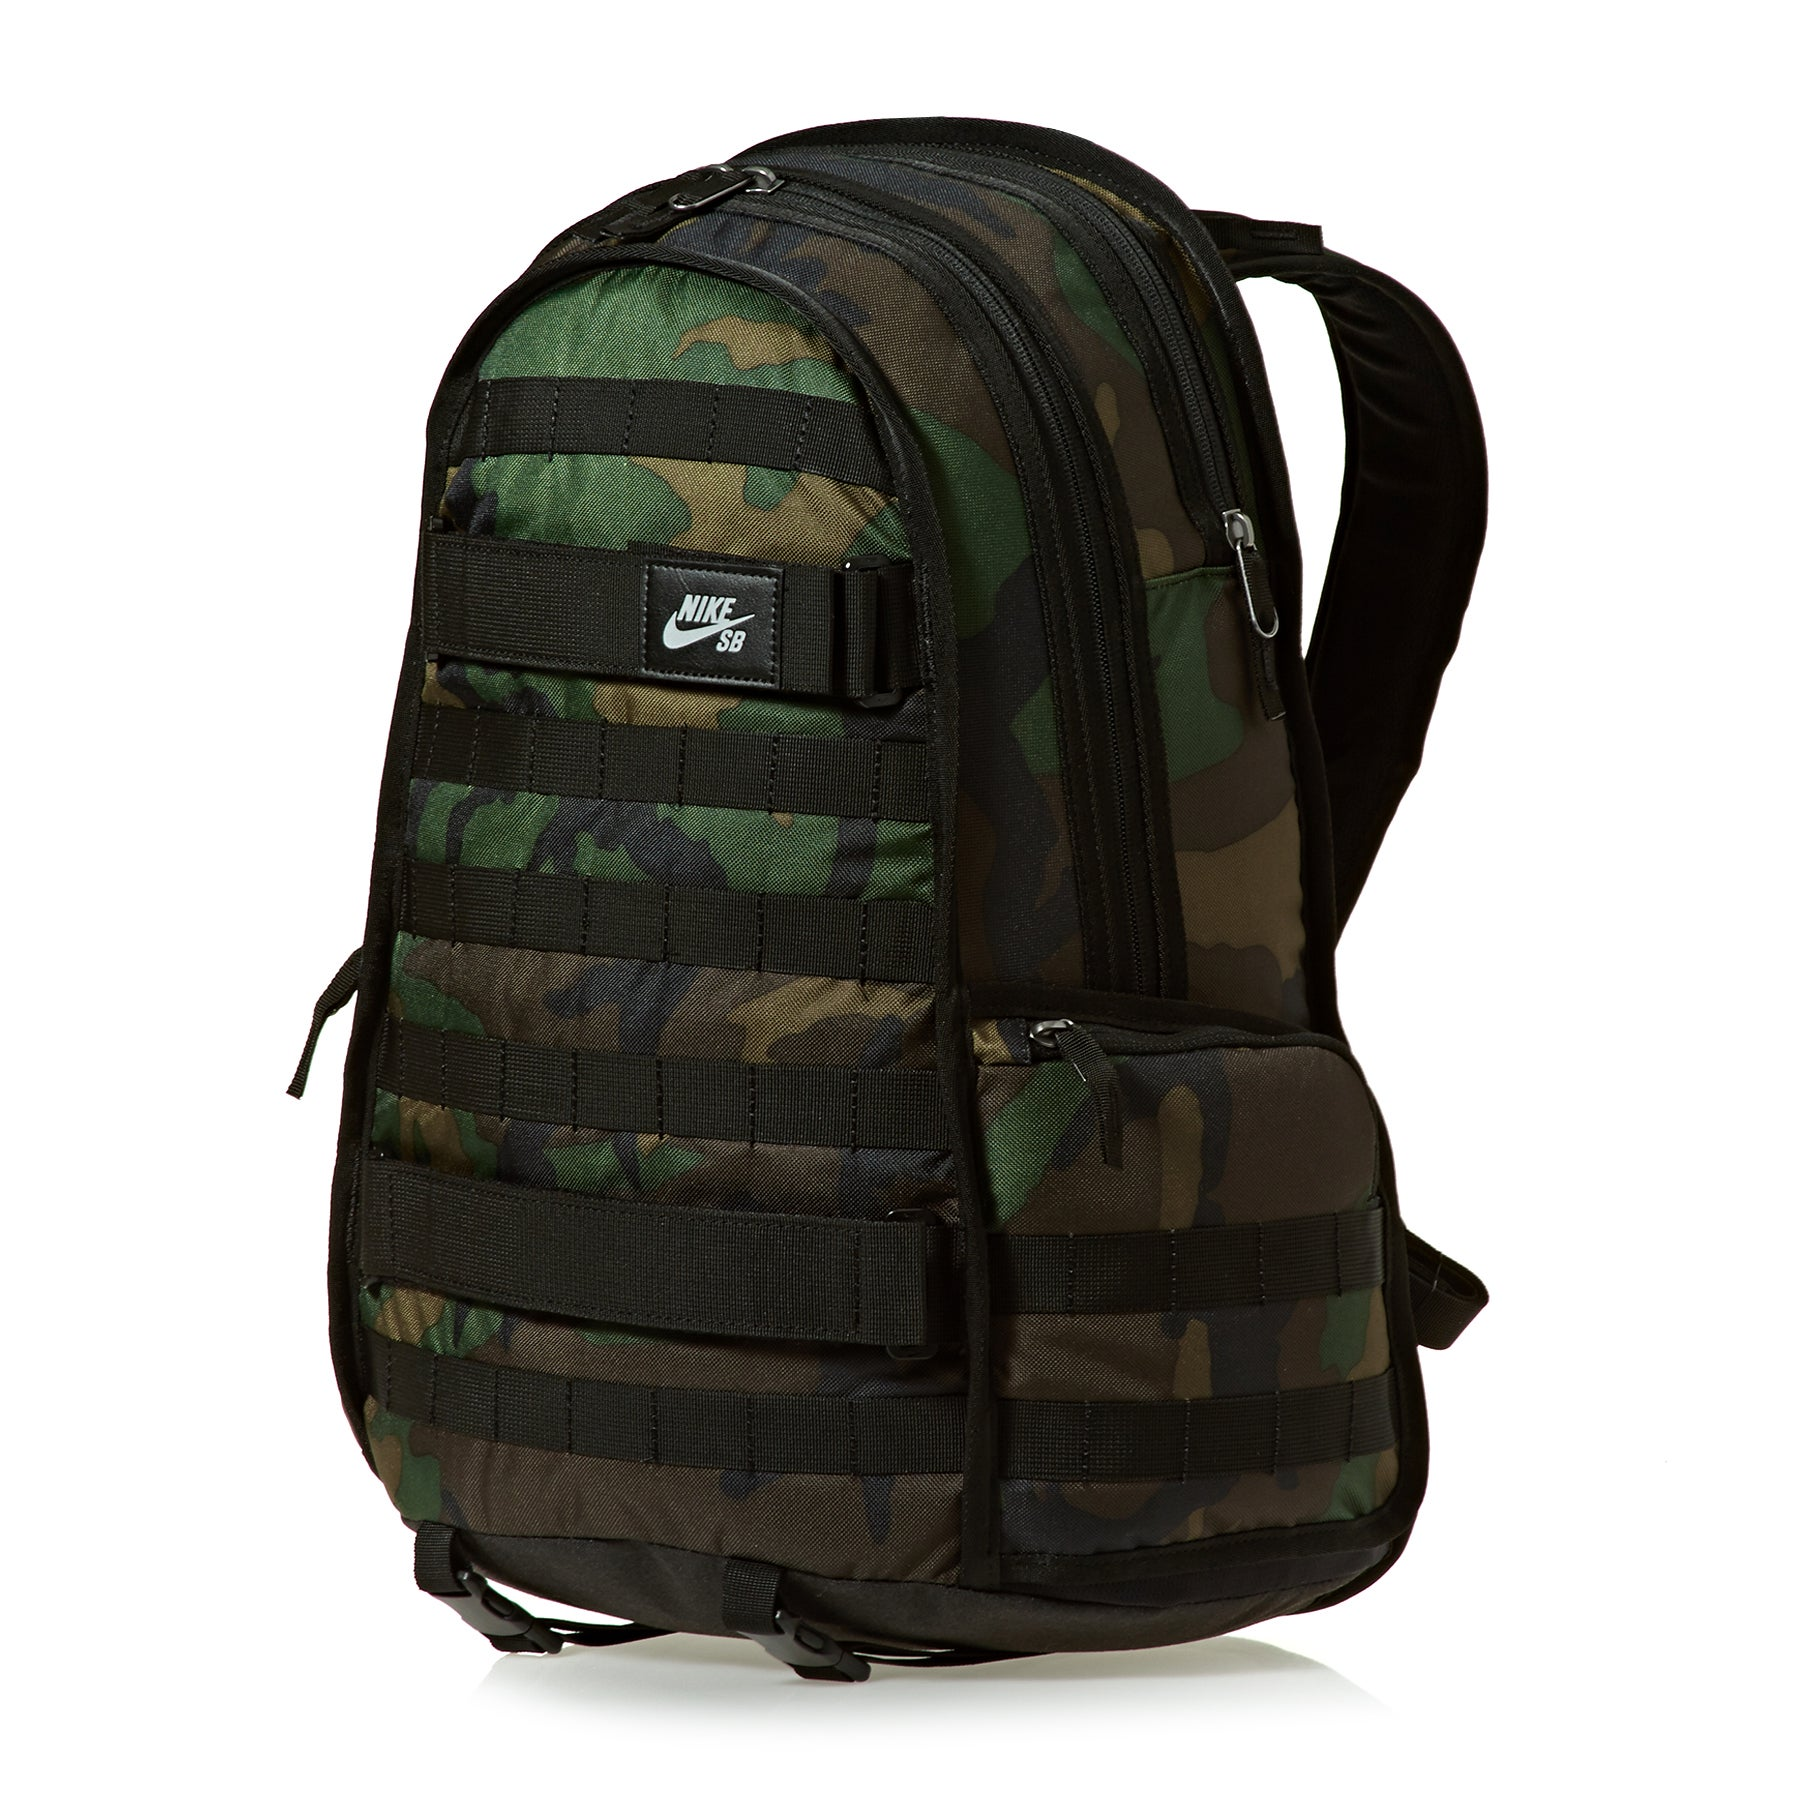 Nike SB RPM AOP Backpack - Iguana Black Camo